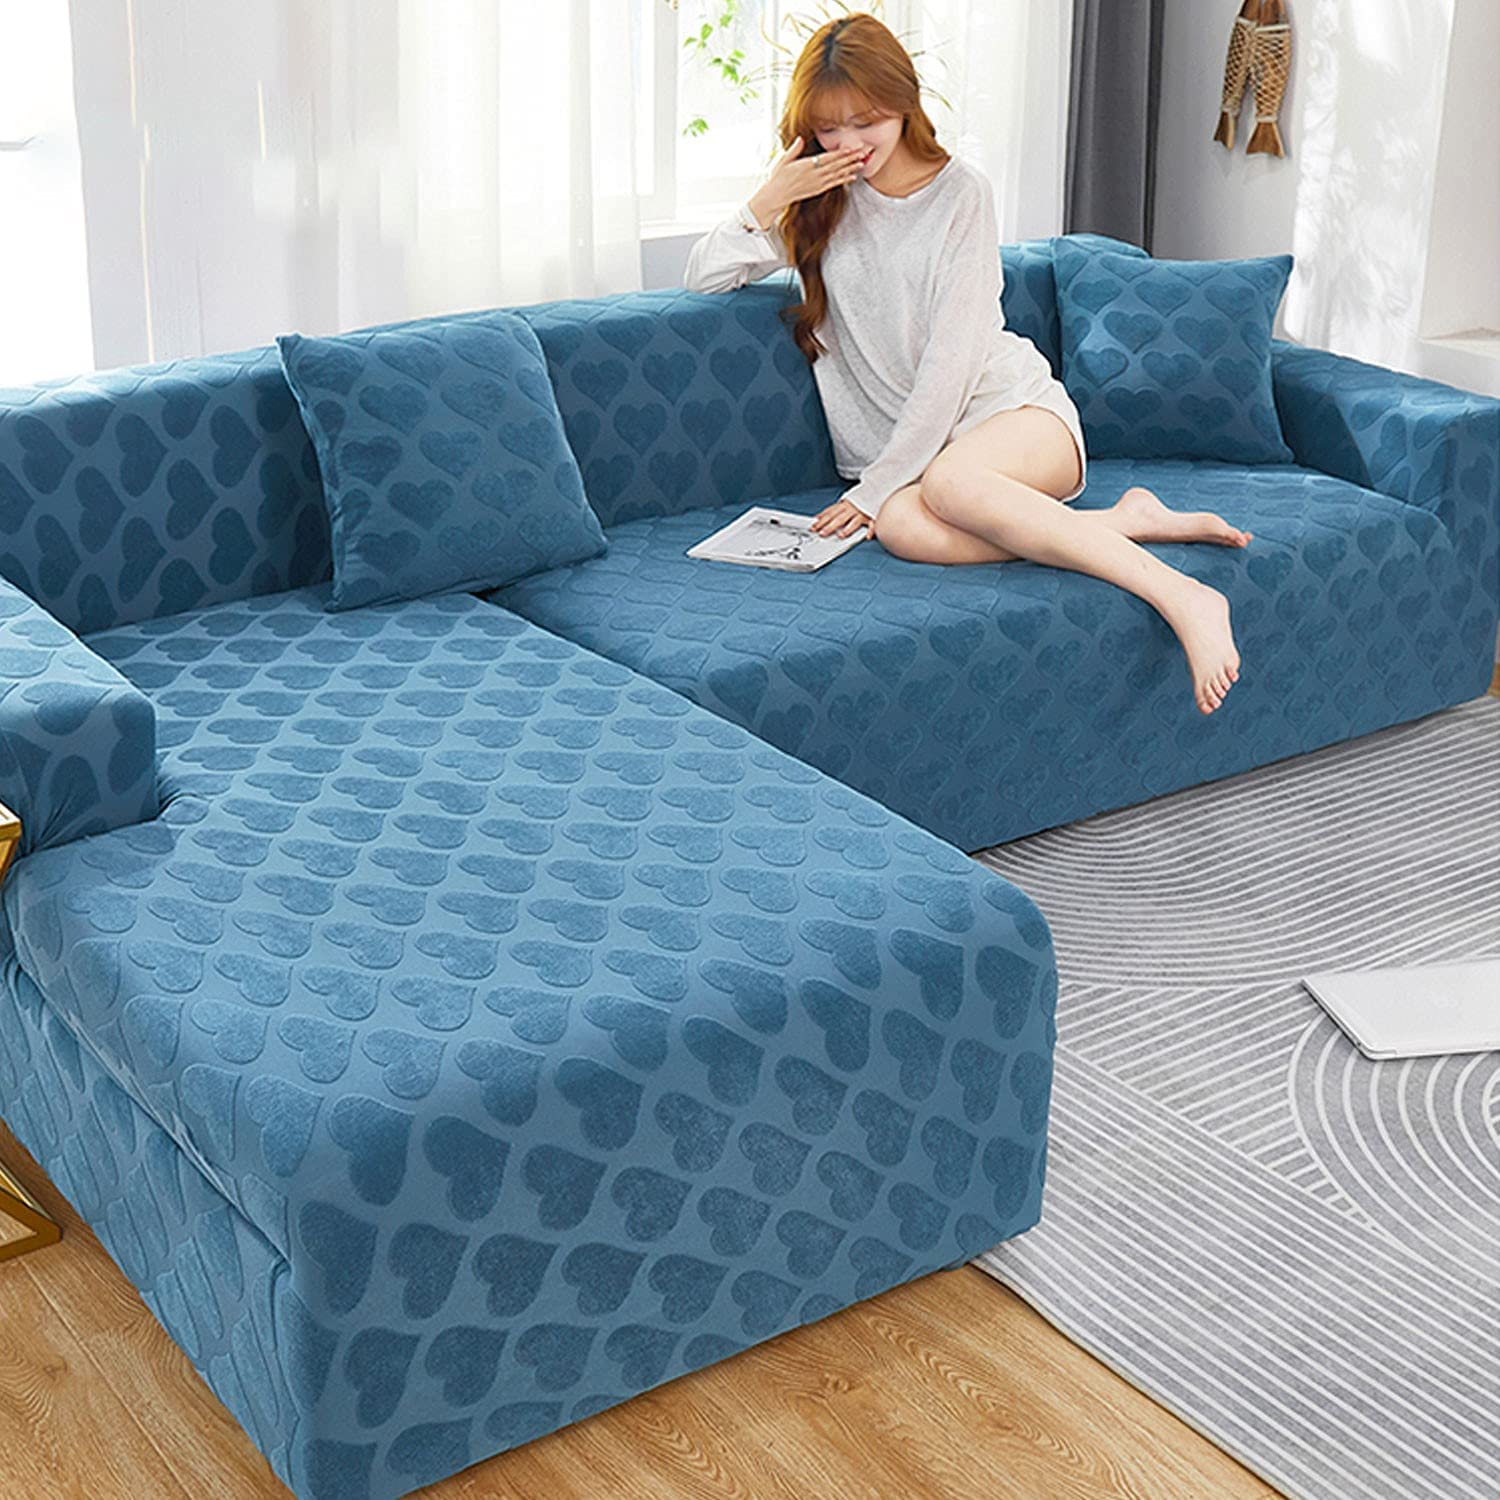 2 PCS 2021 Thicken Safety and trust Stretch Sofa for Fashion Set Sectional Covers